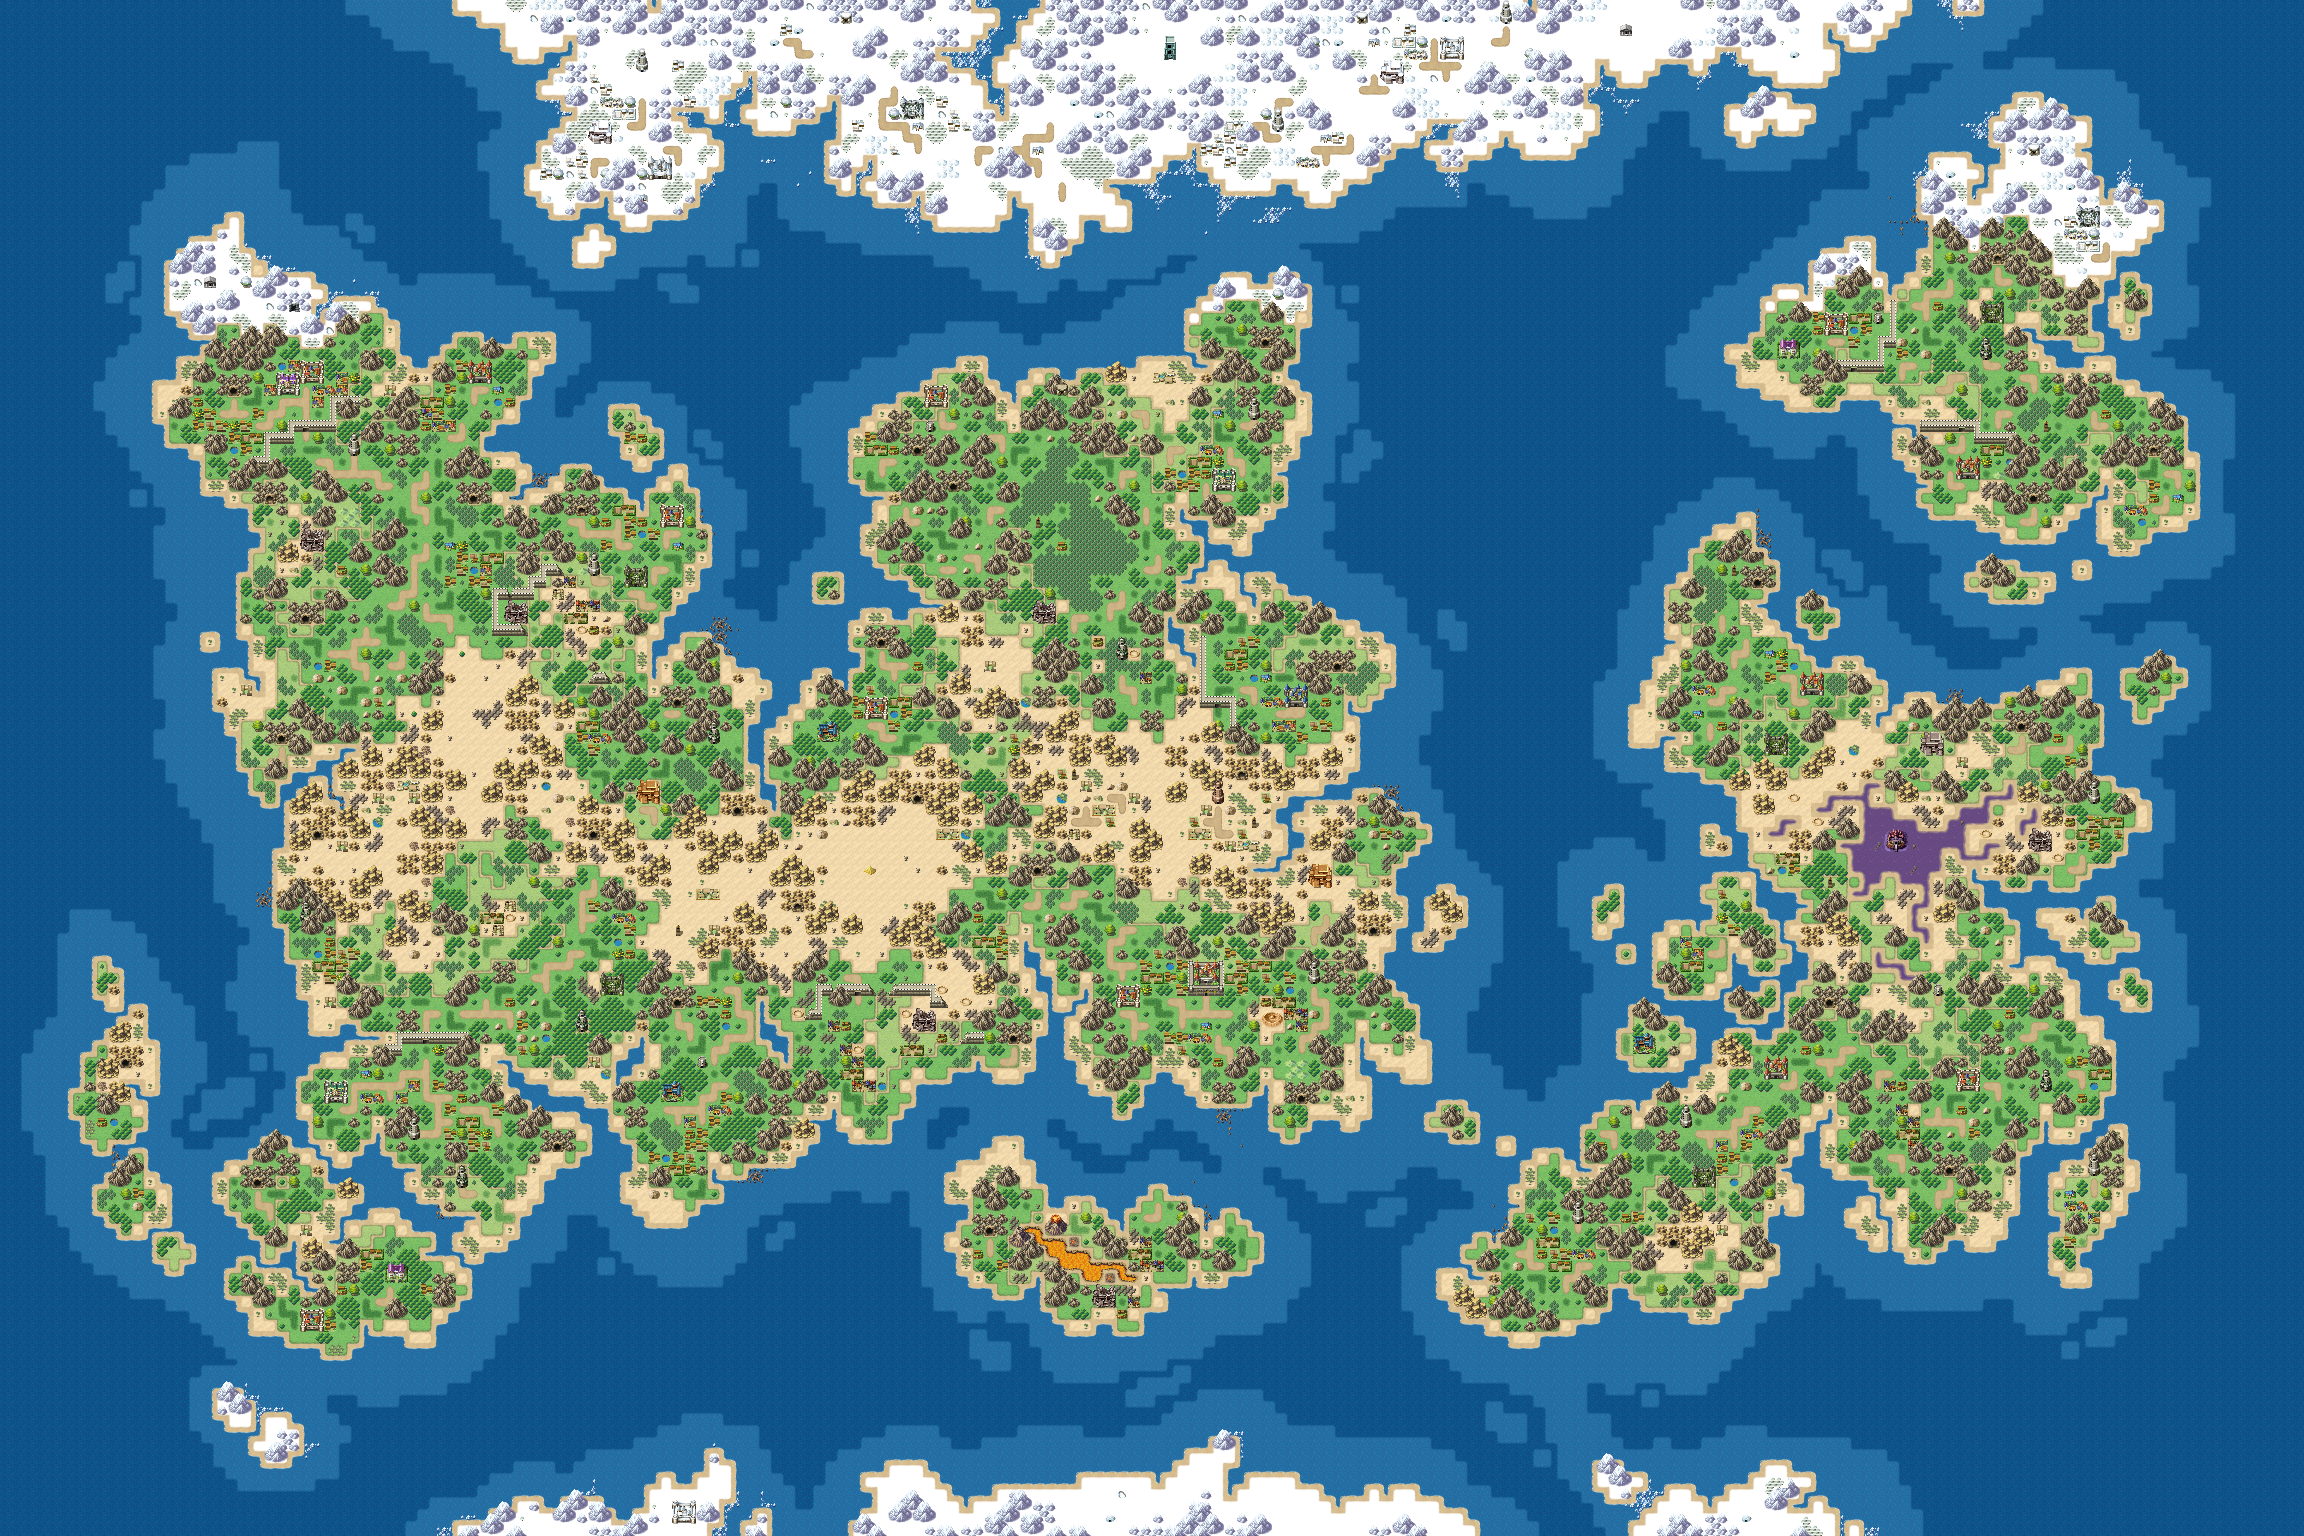 100+ Rpg Map Maker Online – yasminroohi